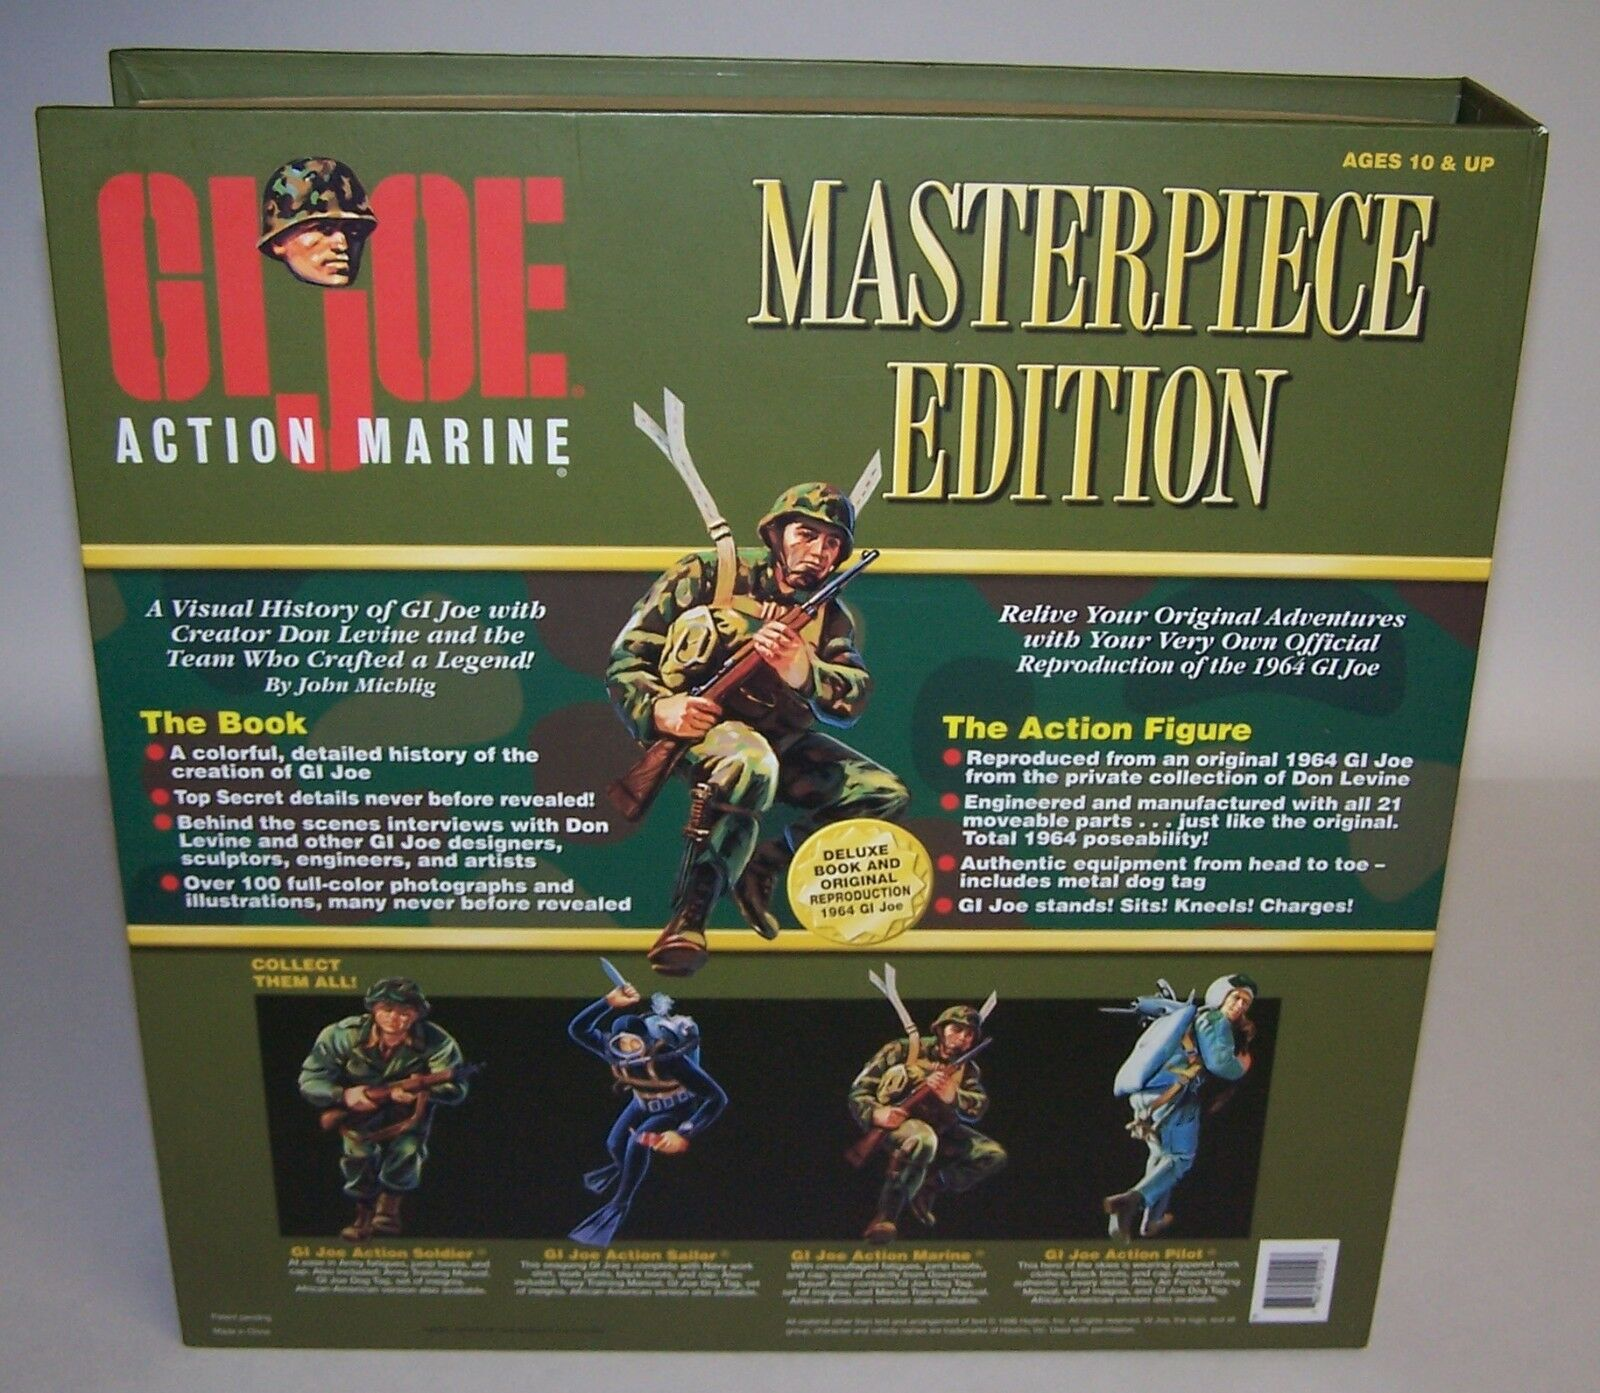 GI Joe Action Marine The The The Story Behind The Legend Masterpiece Ed 1964 Repro dc617a